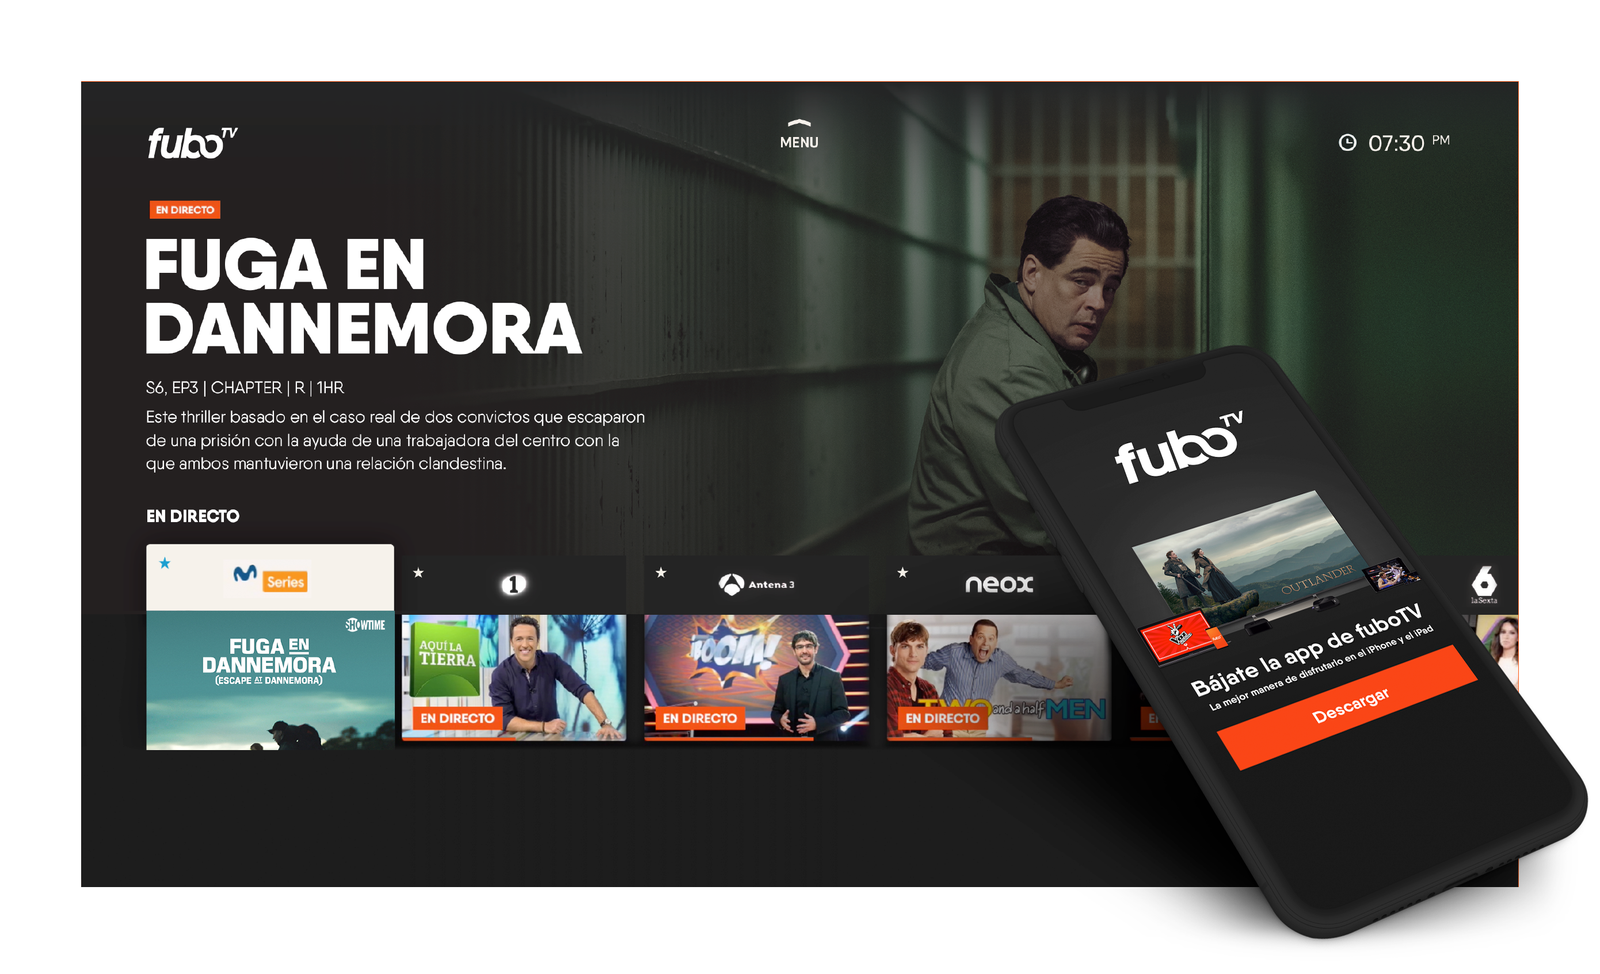 FuboTV launches in Spain – Digital TV Europe